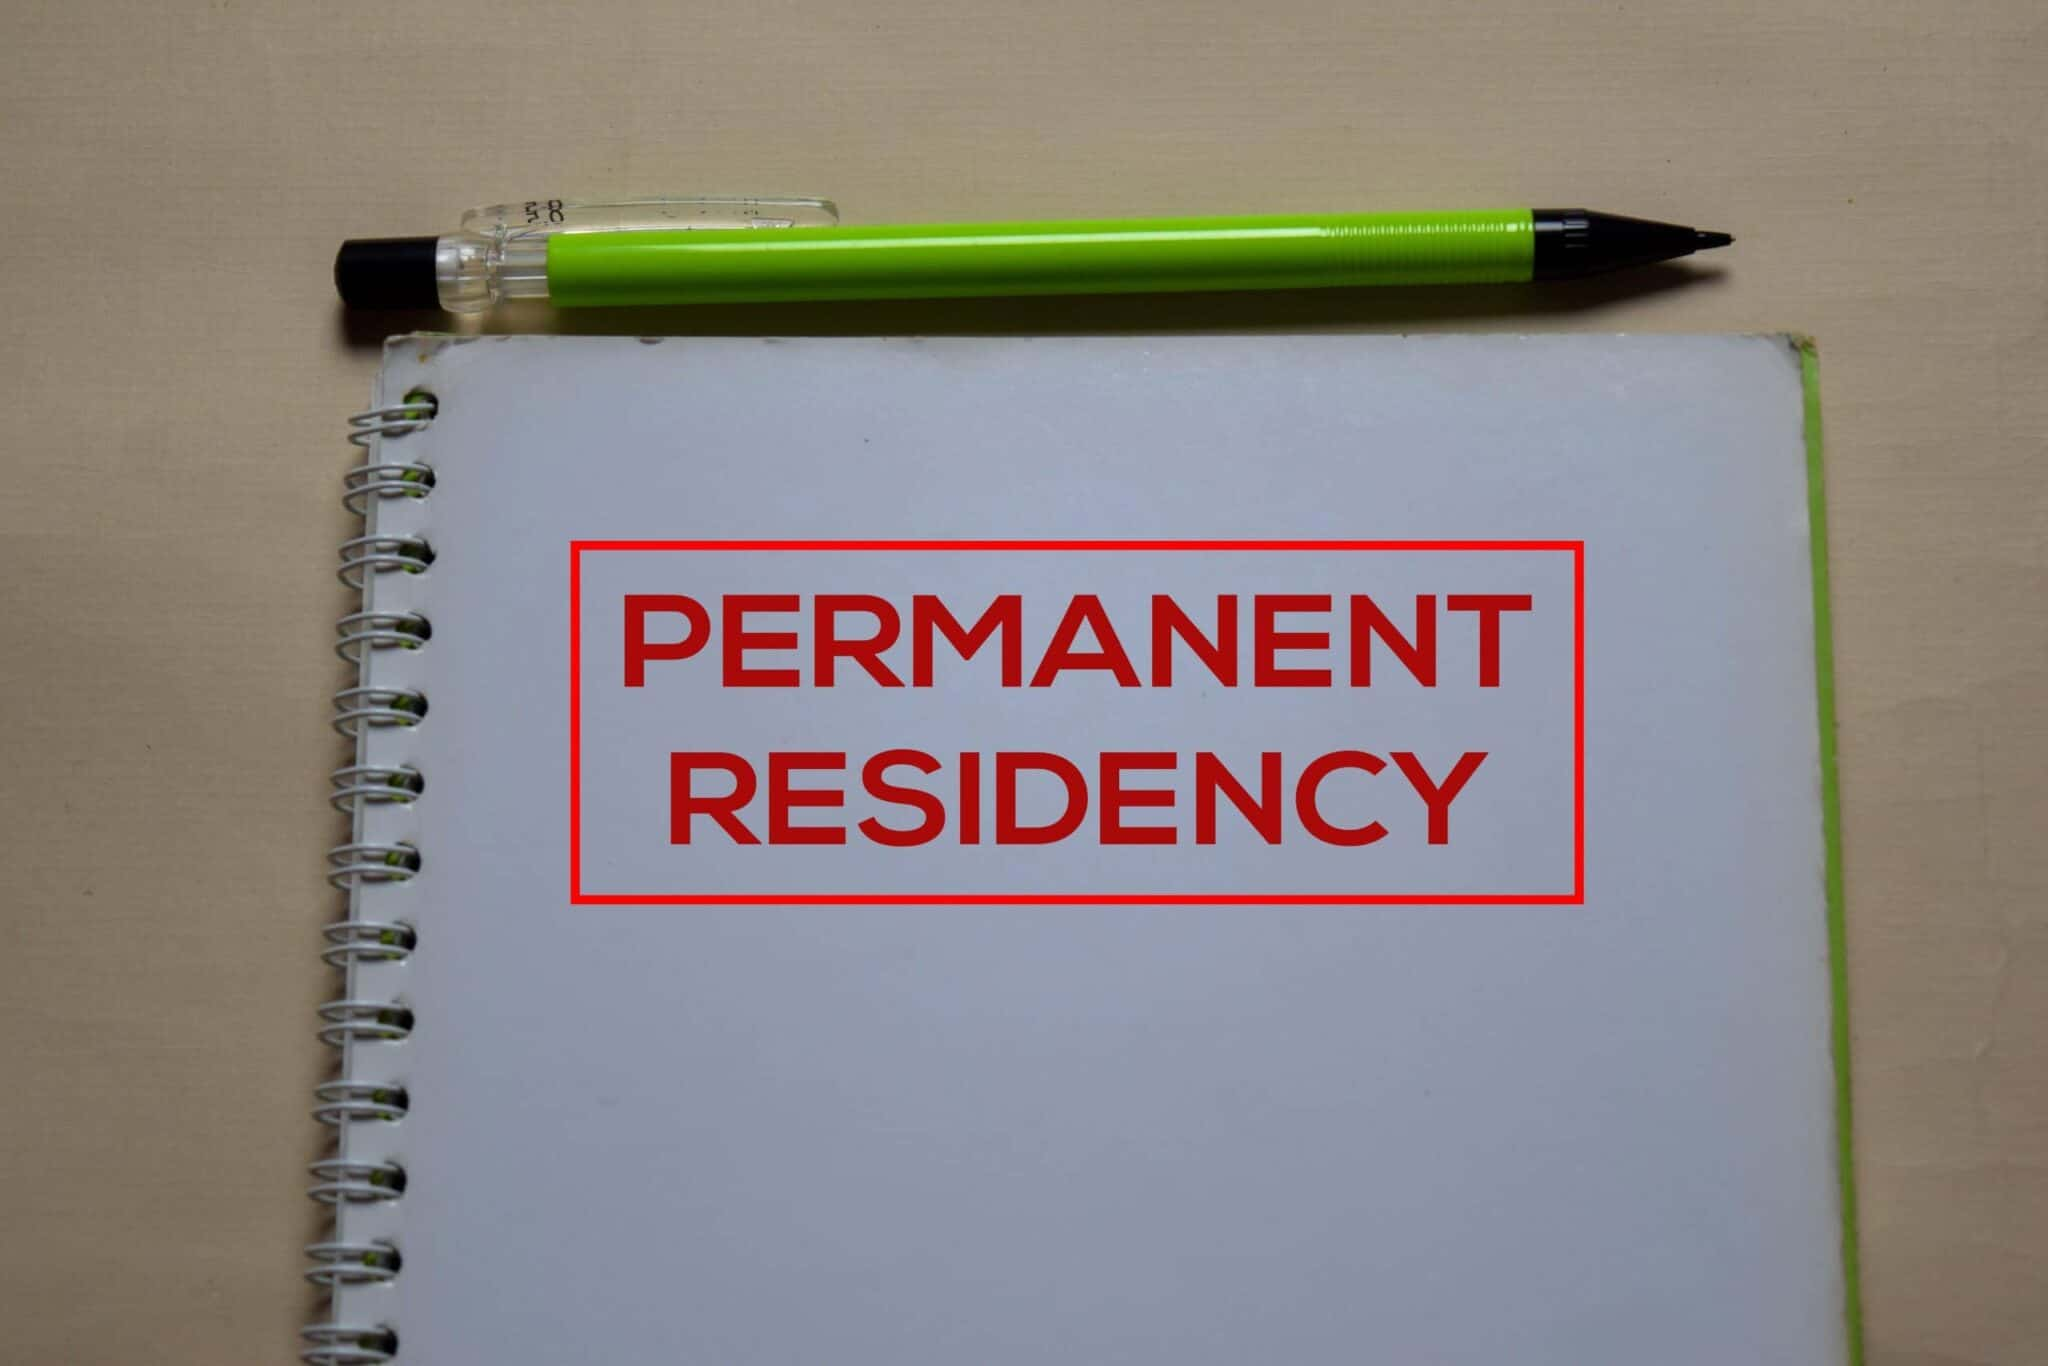 Permanent Residency write on a book isolated on Office Desk